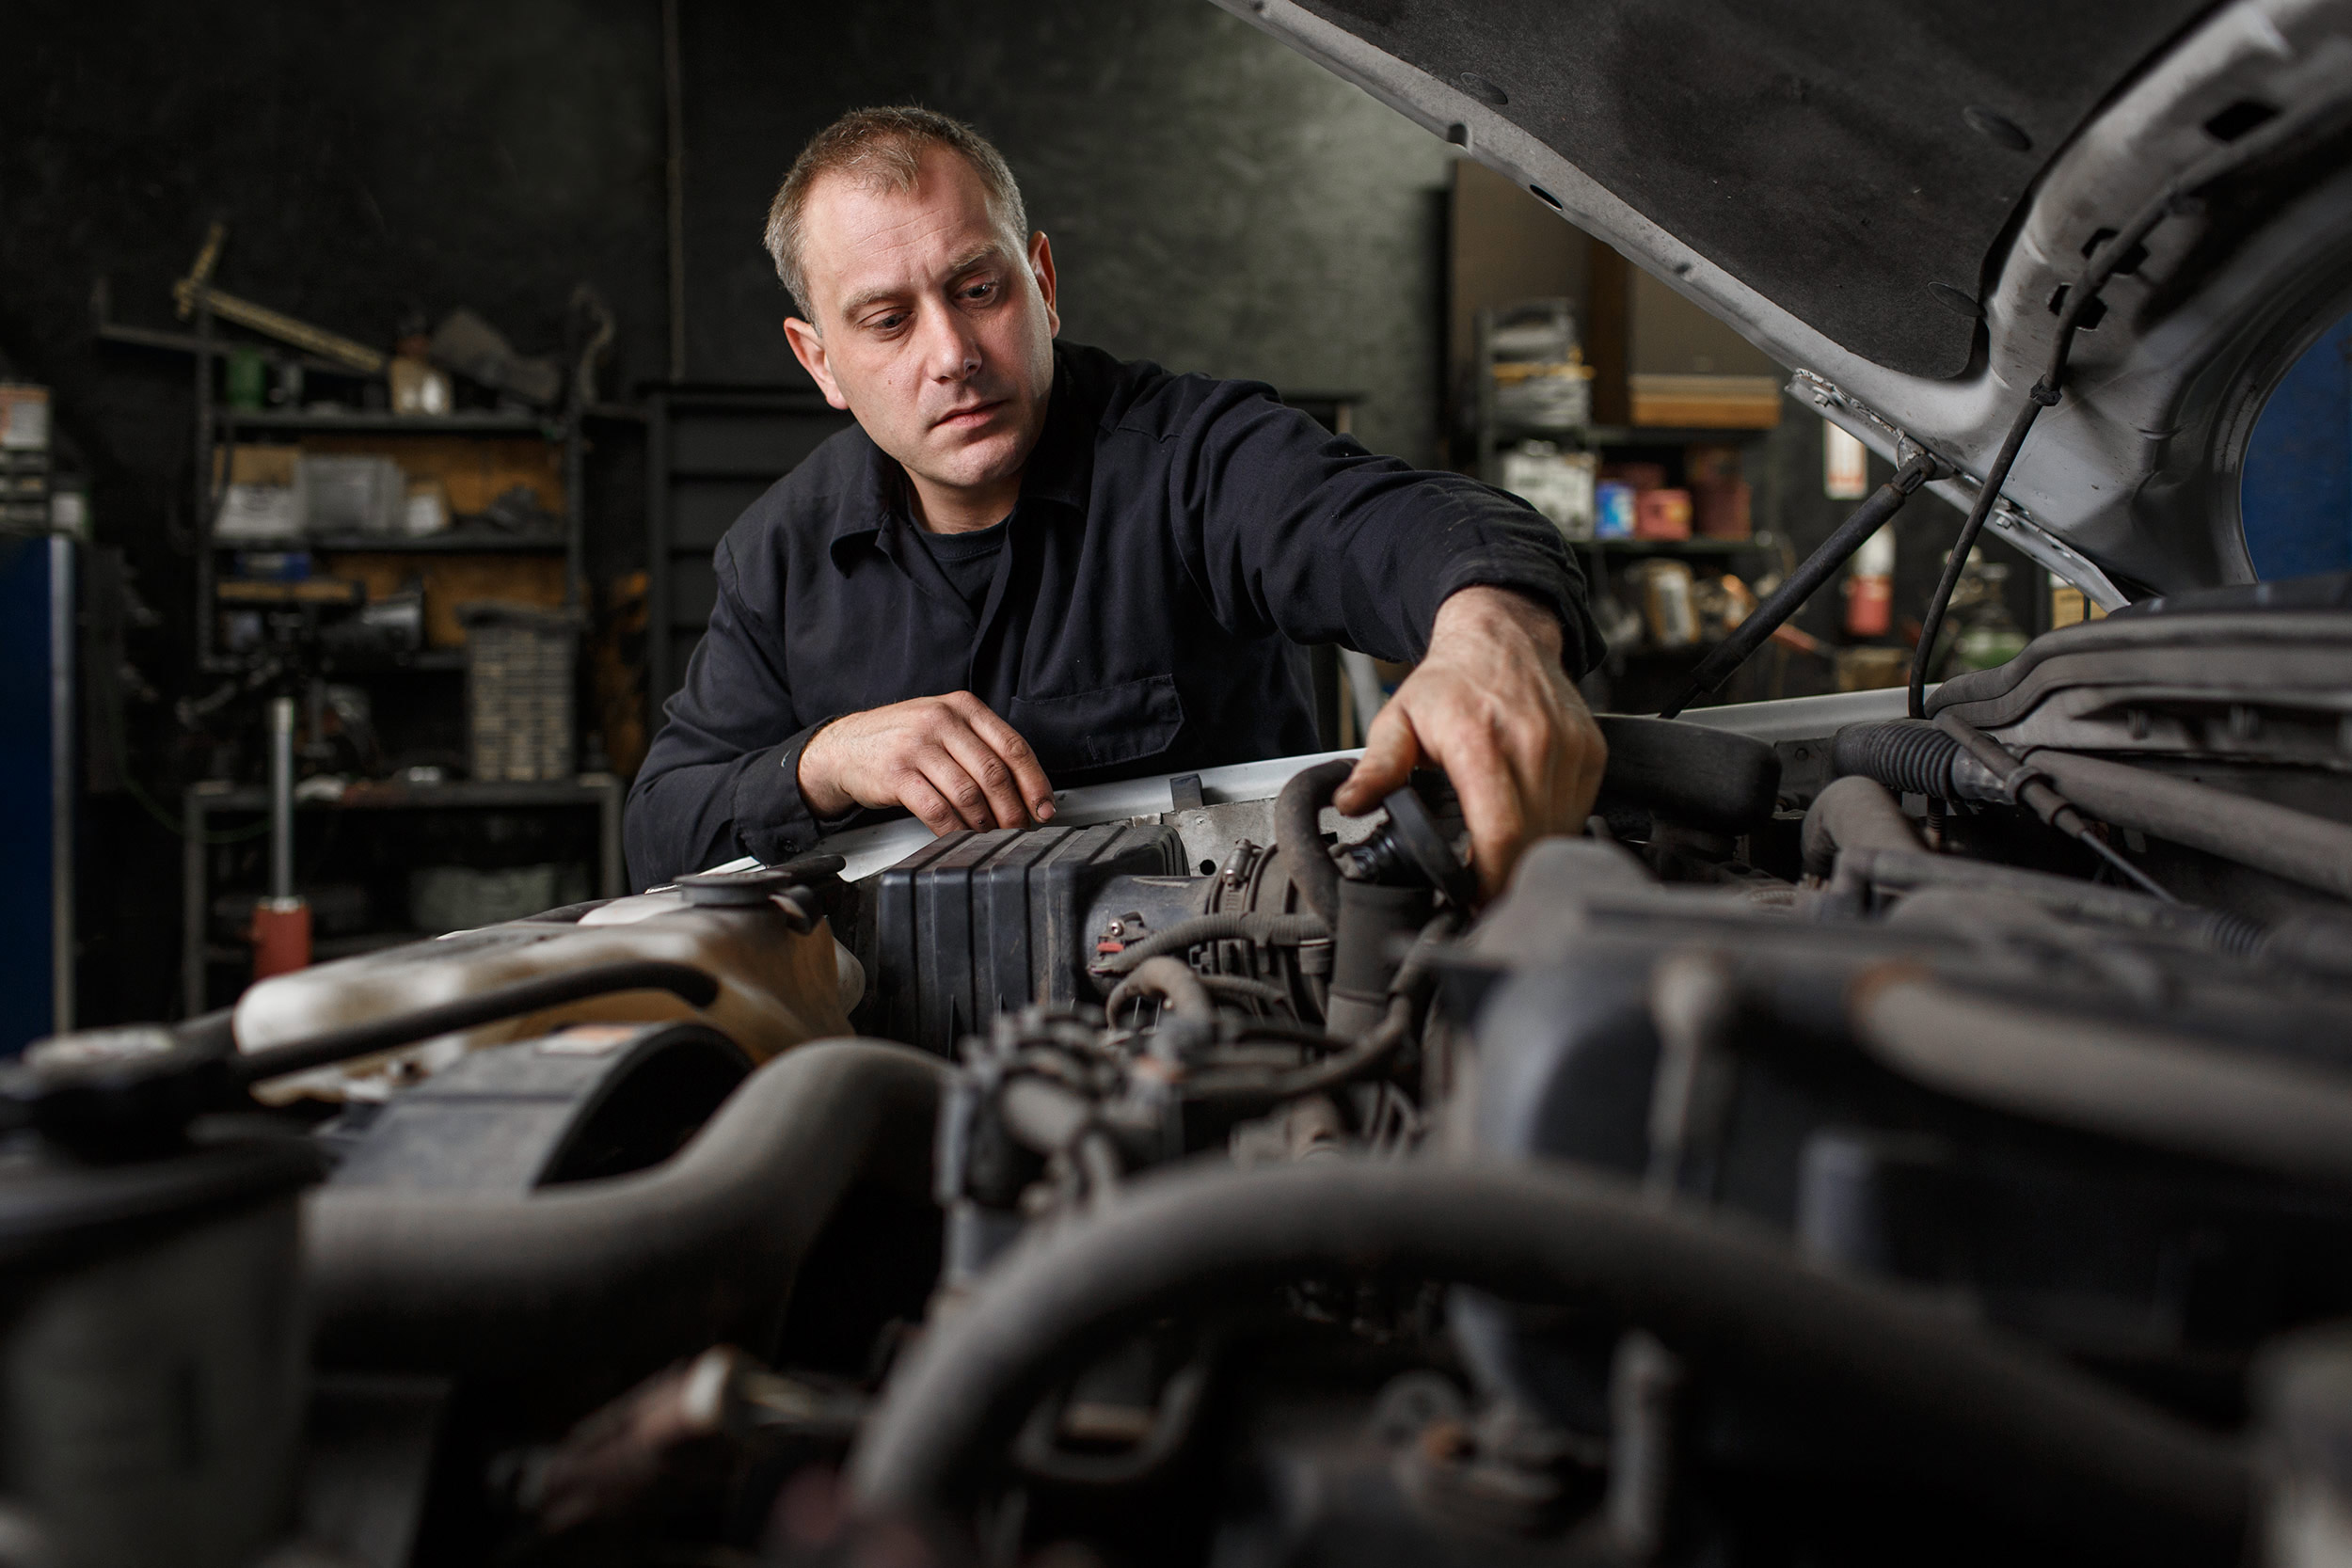 business_auto_mechanic_garage_philadelphia-5903